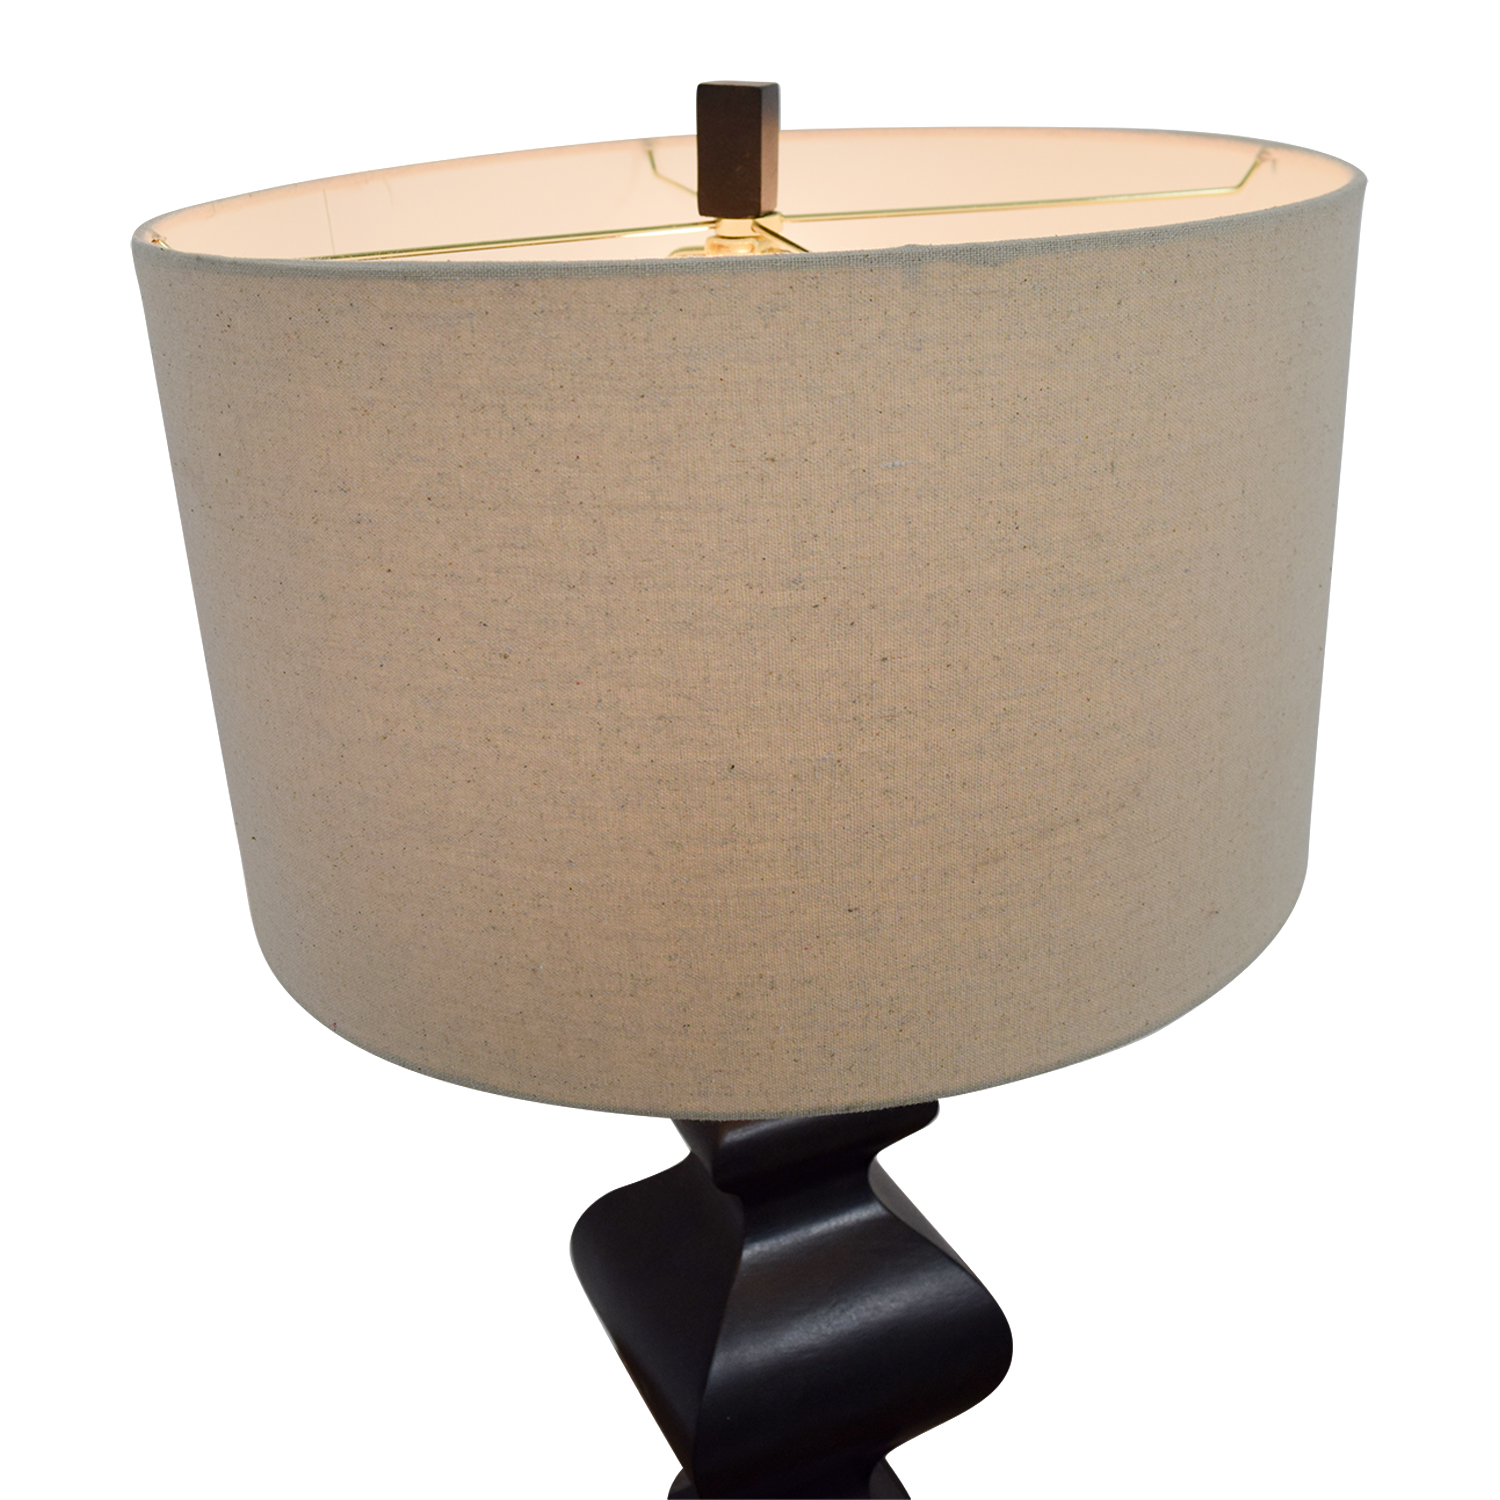 50 Off Brown Amp Tan Table Lamp Decor